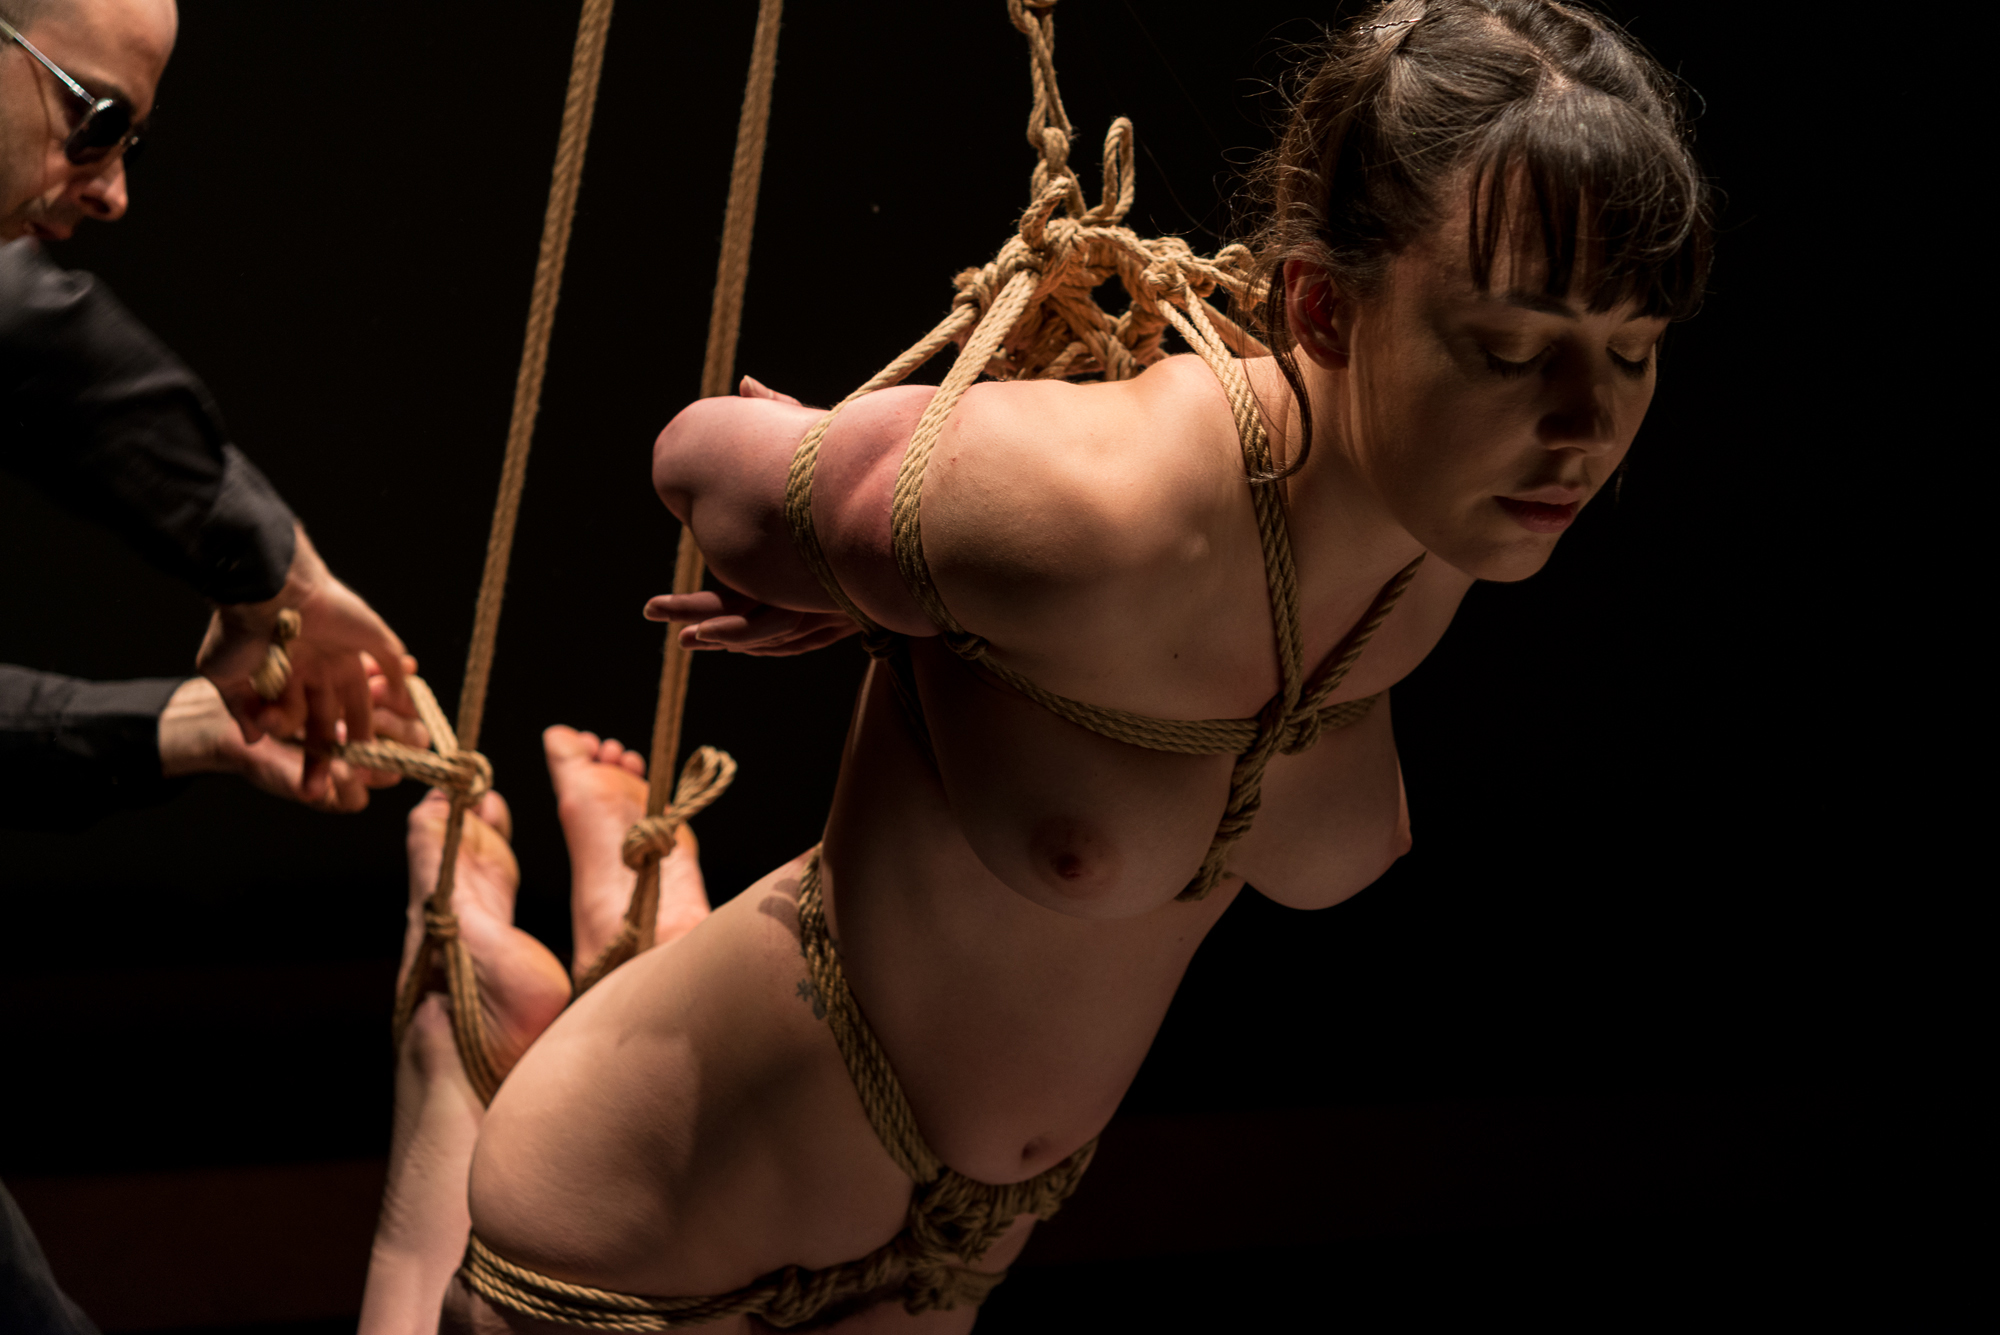 Pedro tying Gestalta in a face down suspension during a shibari performance